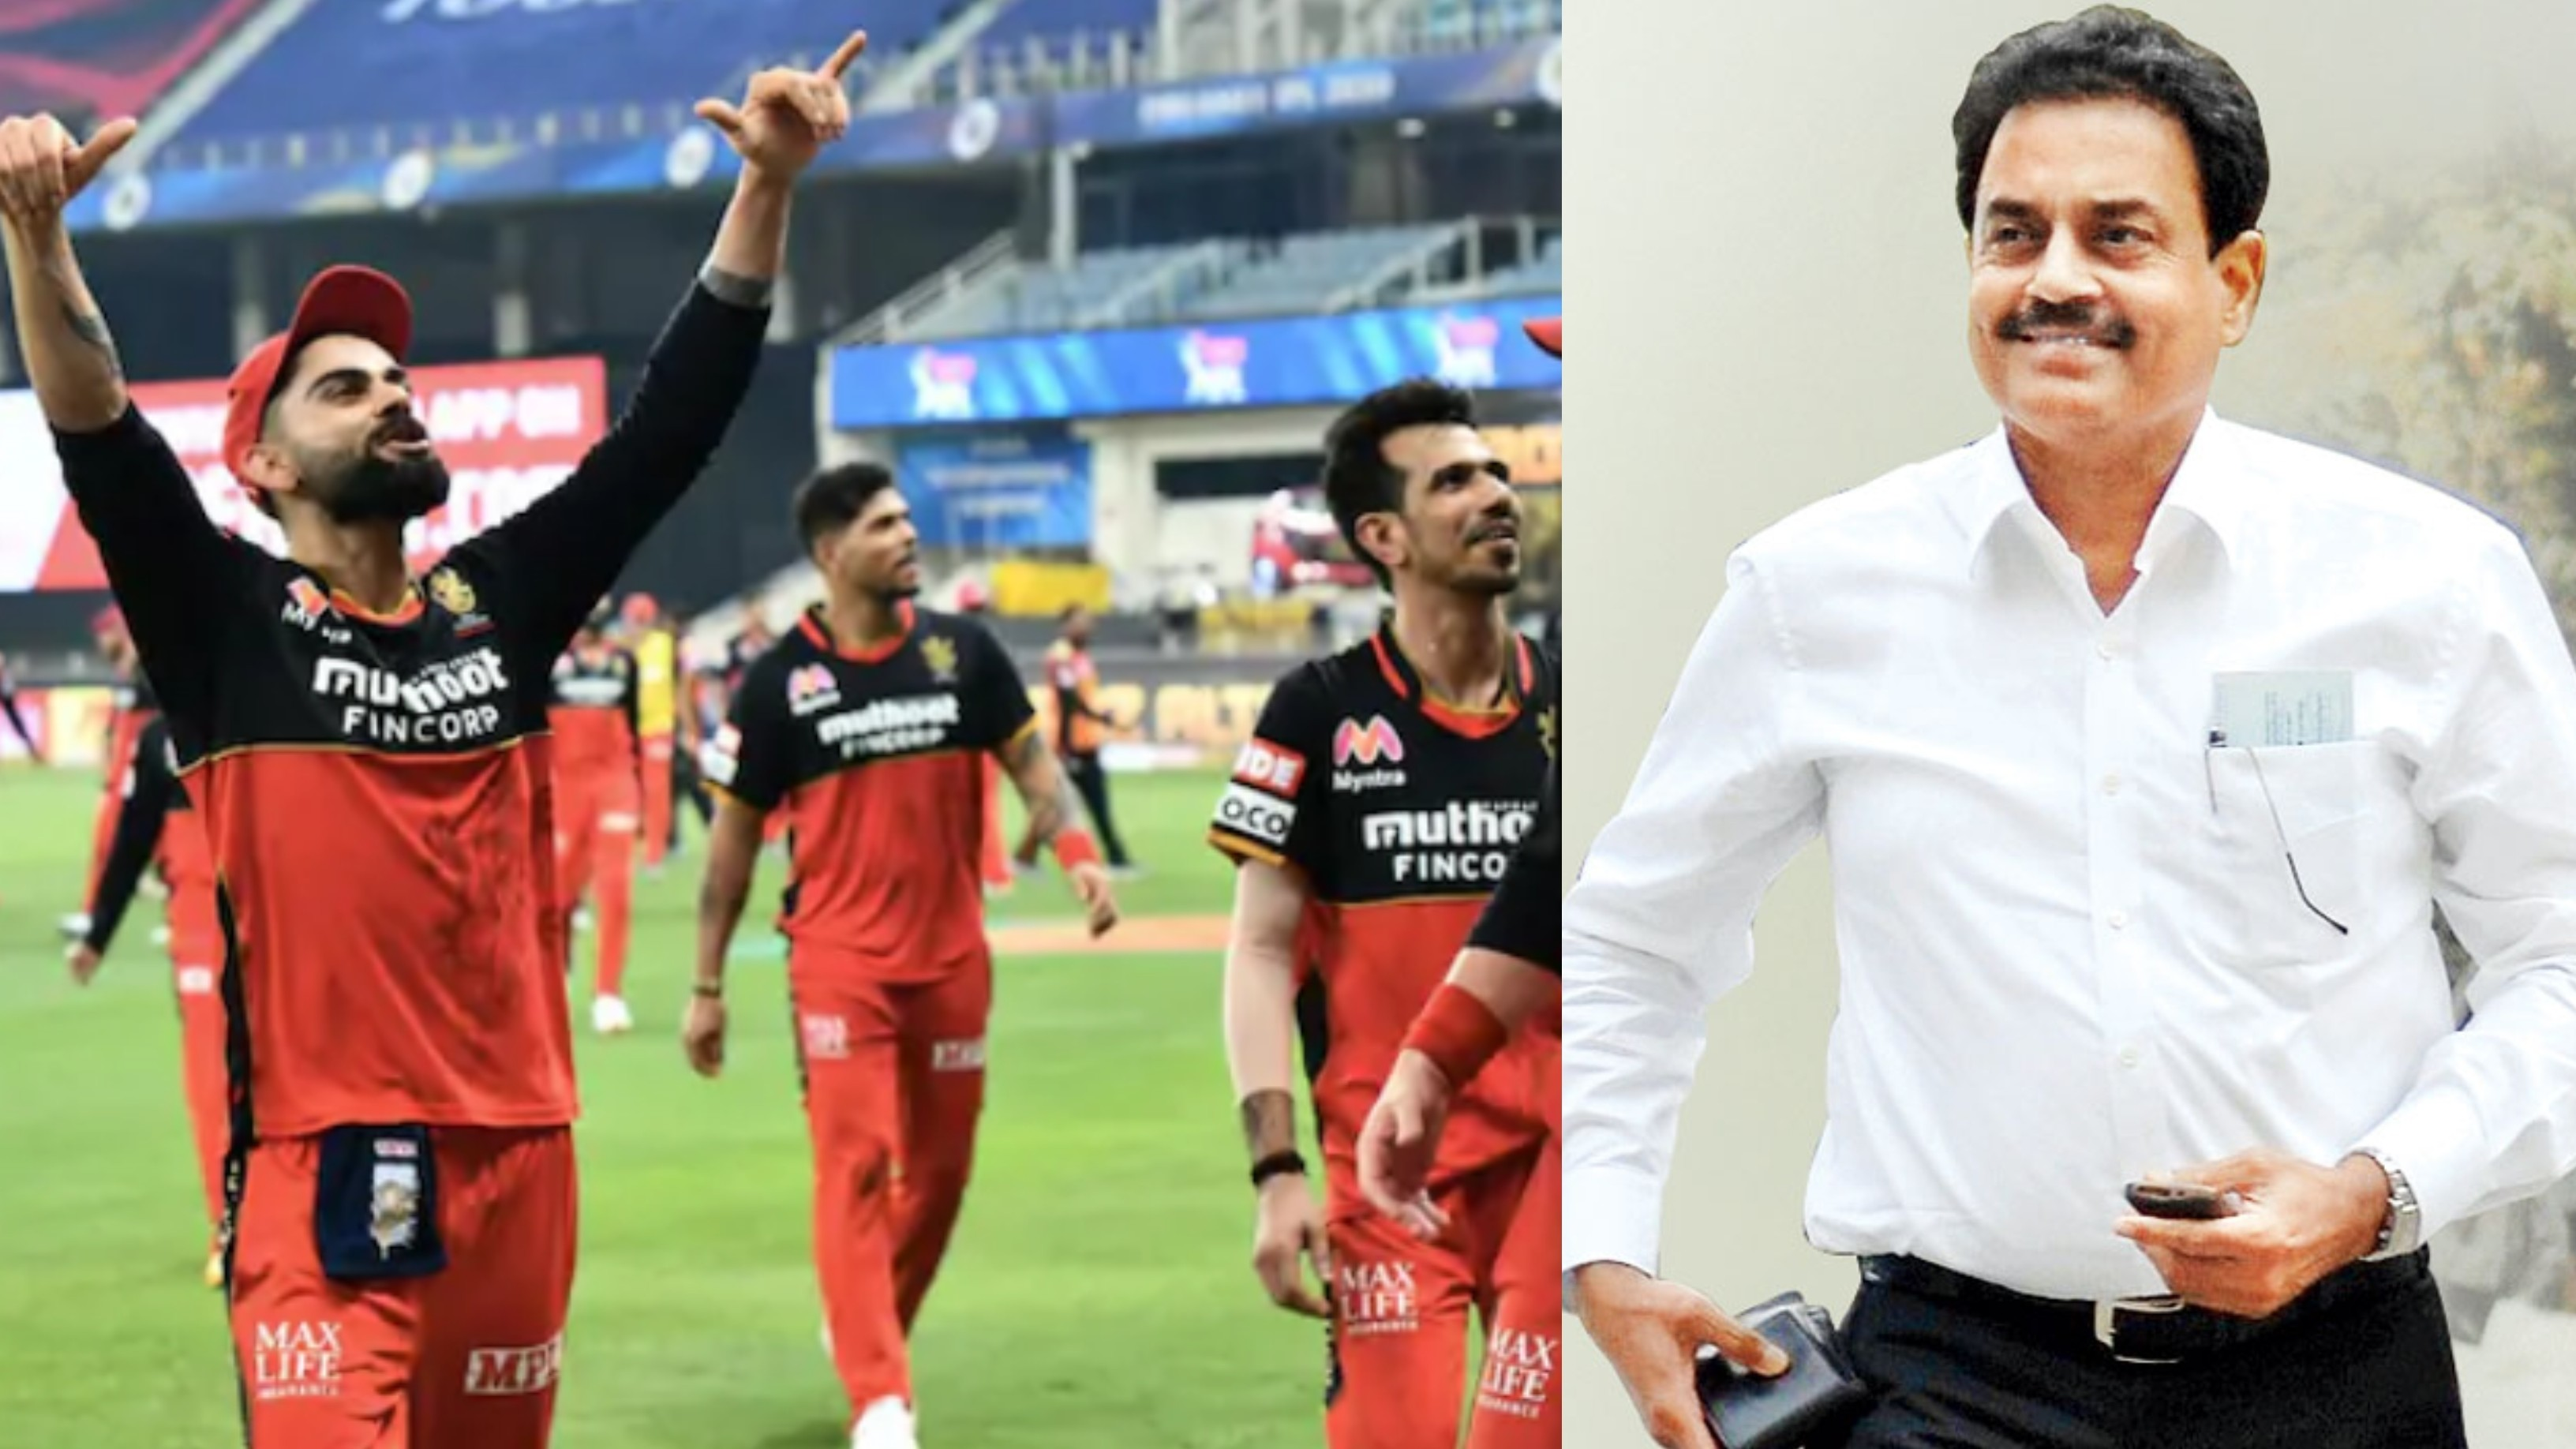 IPL 2020: Dilip Vengsarkar backs Virat Kohli-led RCB to win IPL 13 trophy